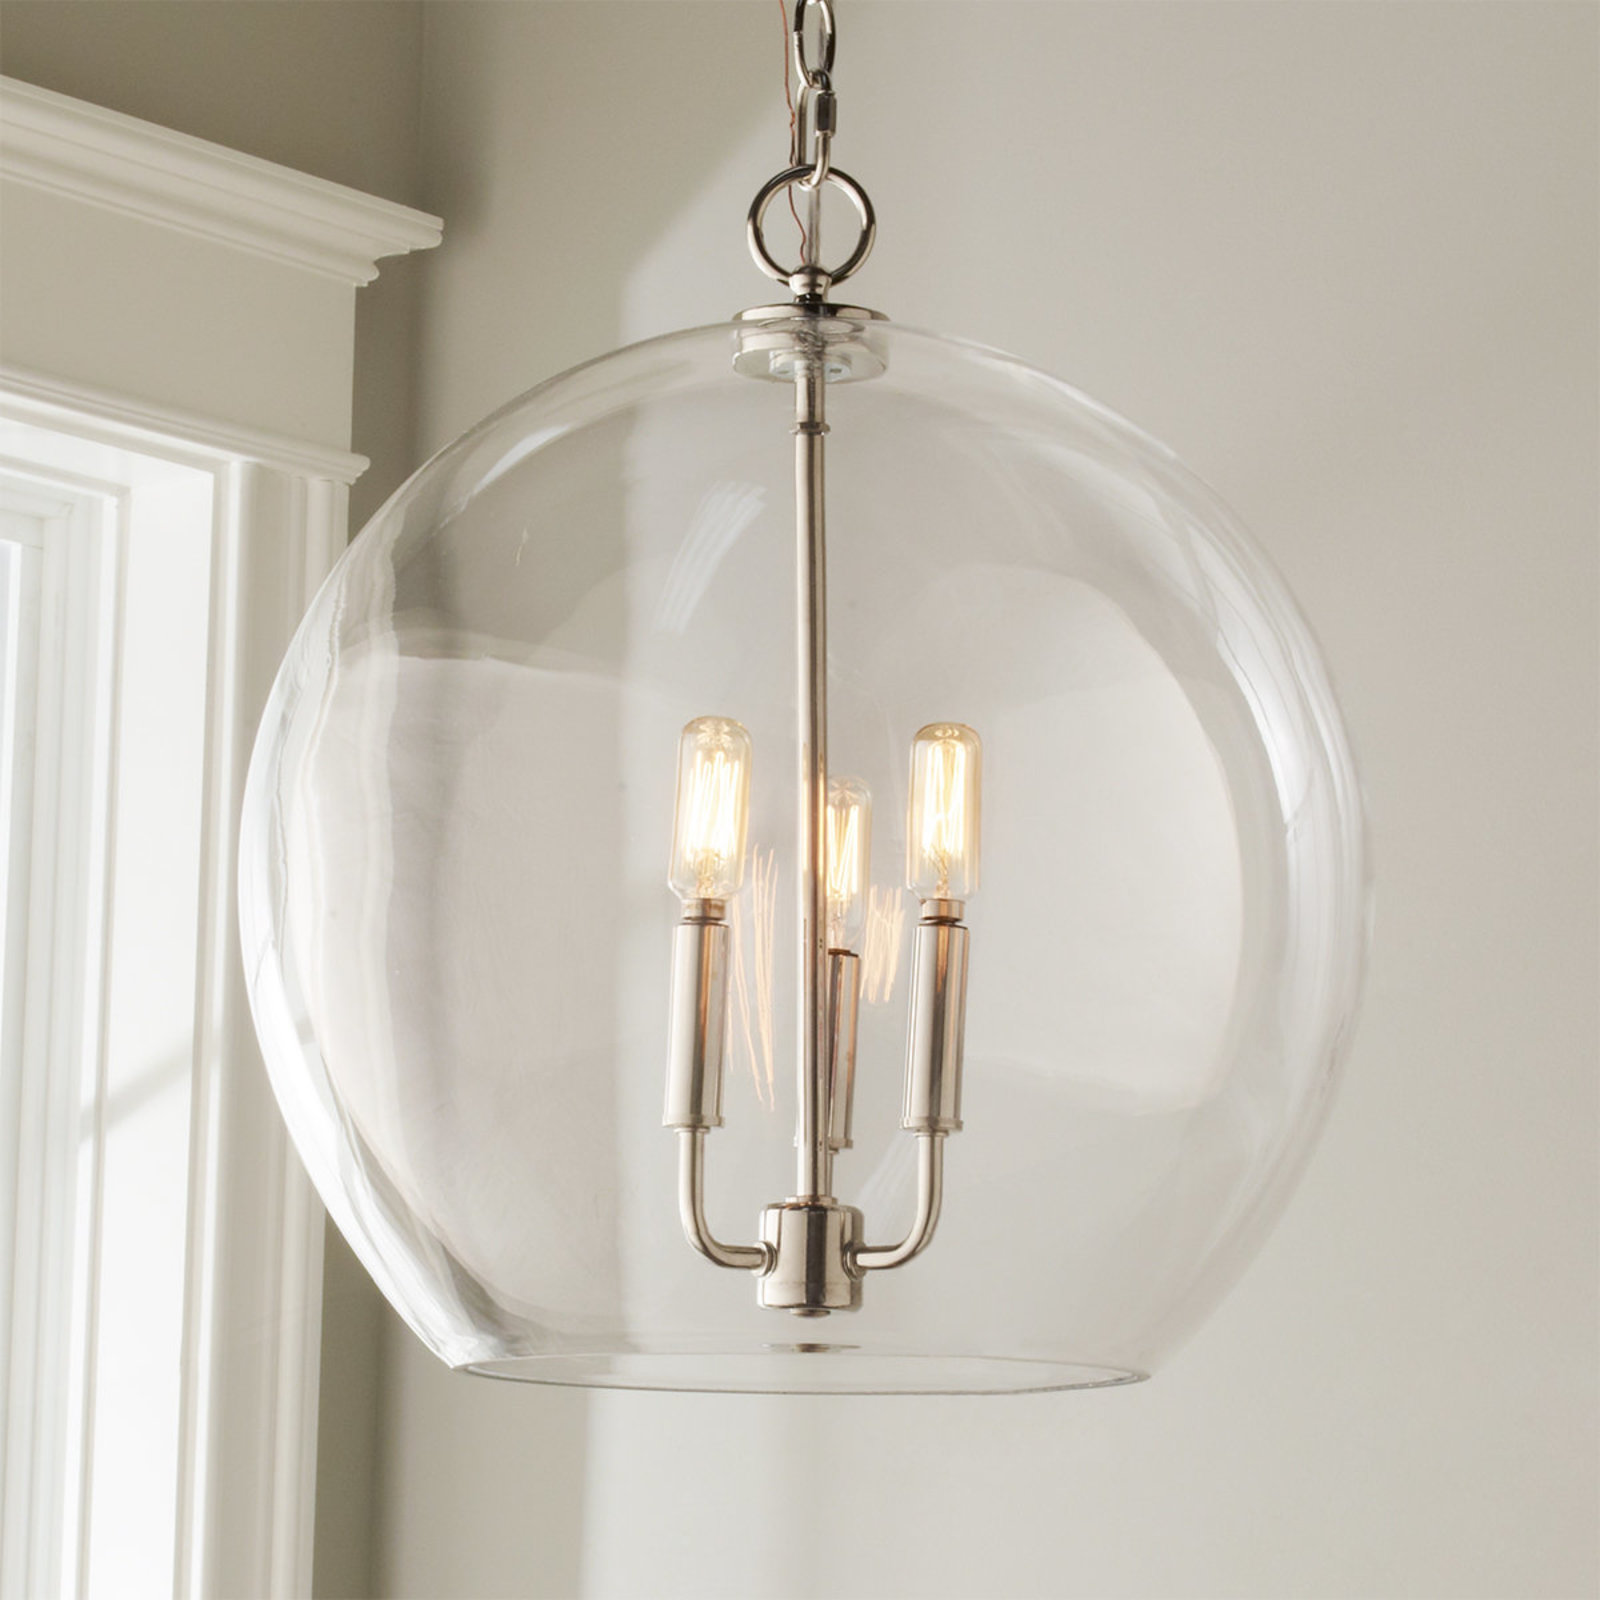 Replacement Globes for Light Fixtures | Glass Chandelier Shades | Replacement Sconce Shades